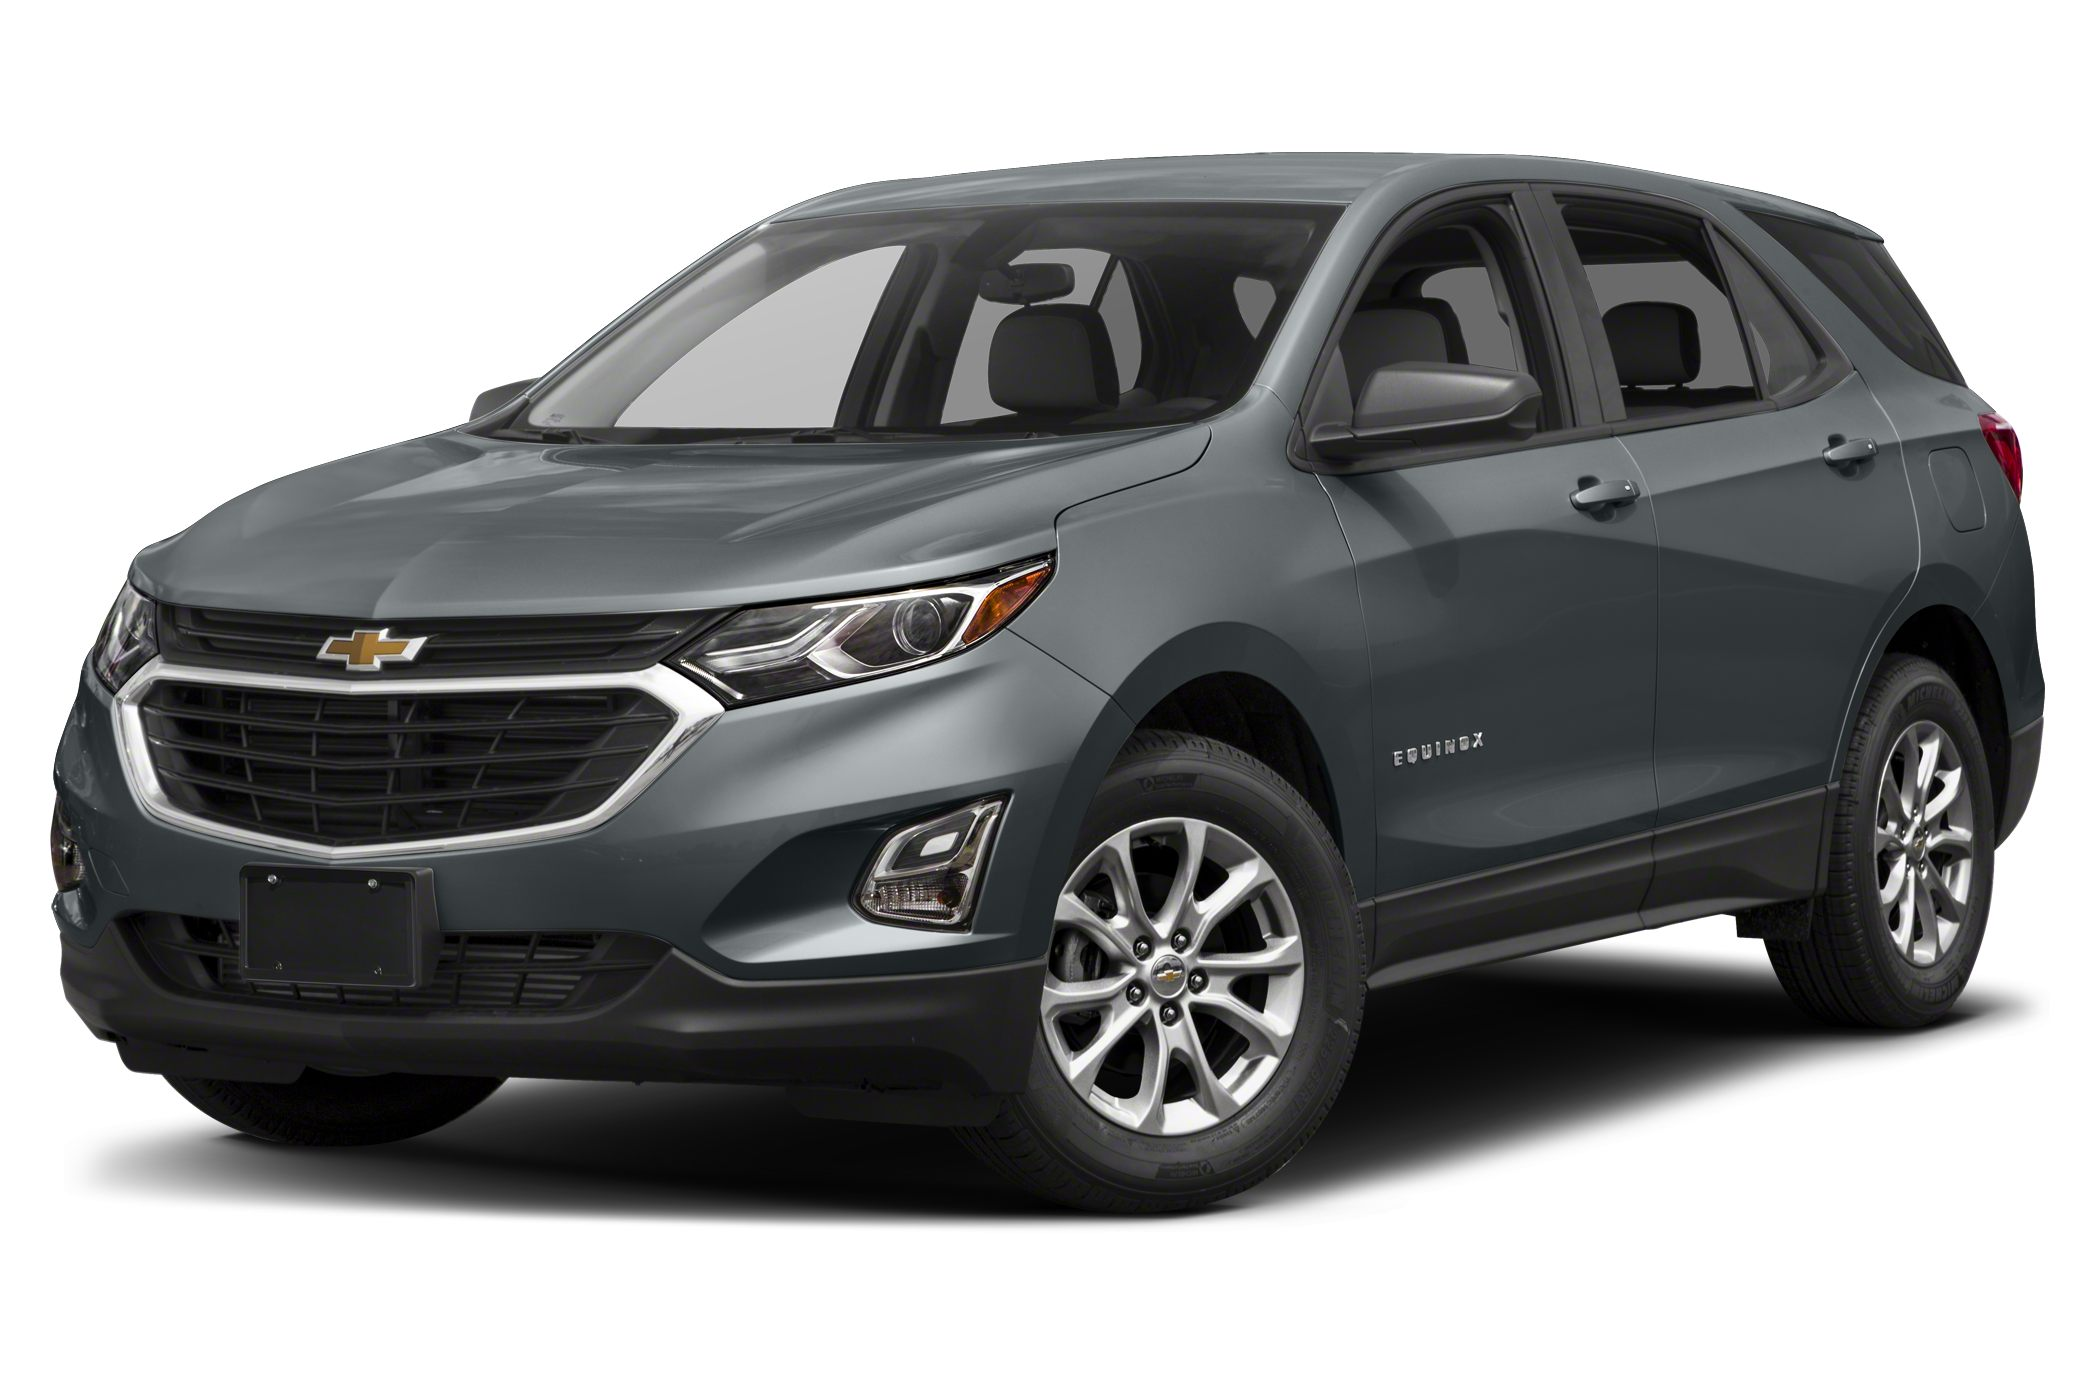 Berglund Used Cars Elegant New and Used Cars for Sale In Blacksburg Va with Less Than 50 000